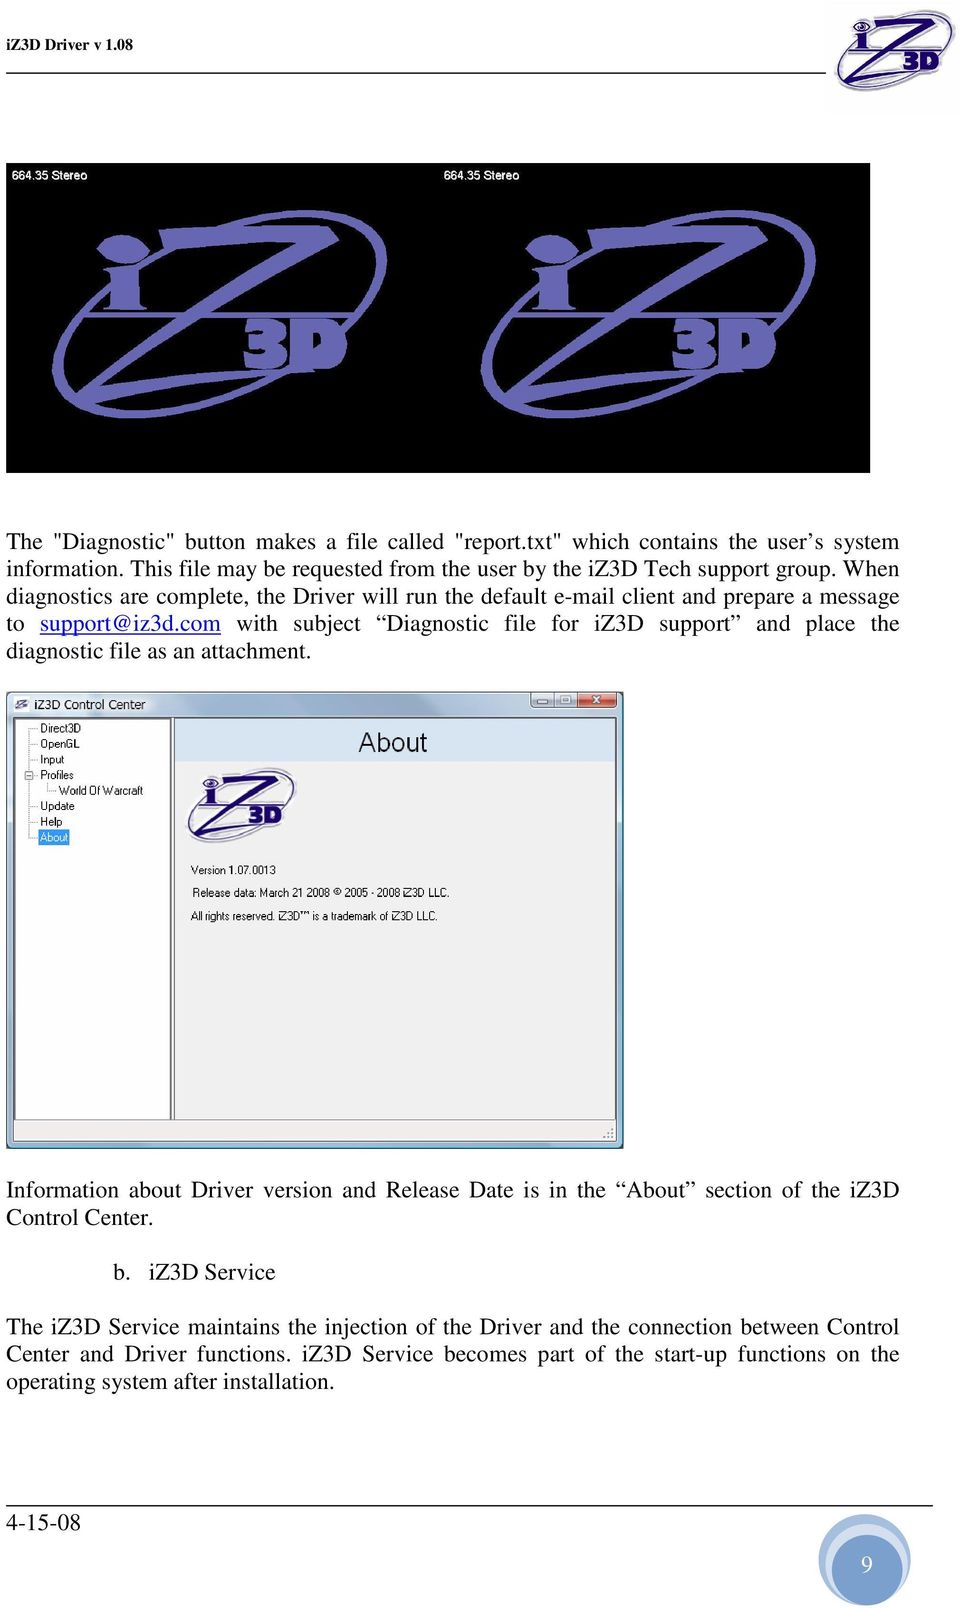 Iz3d Stereo Driver Description Directx Realization Pdf Line Com With Subject Diagnostic File For Support And Place The As An Attachment